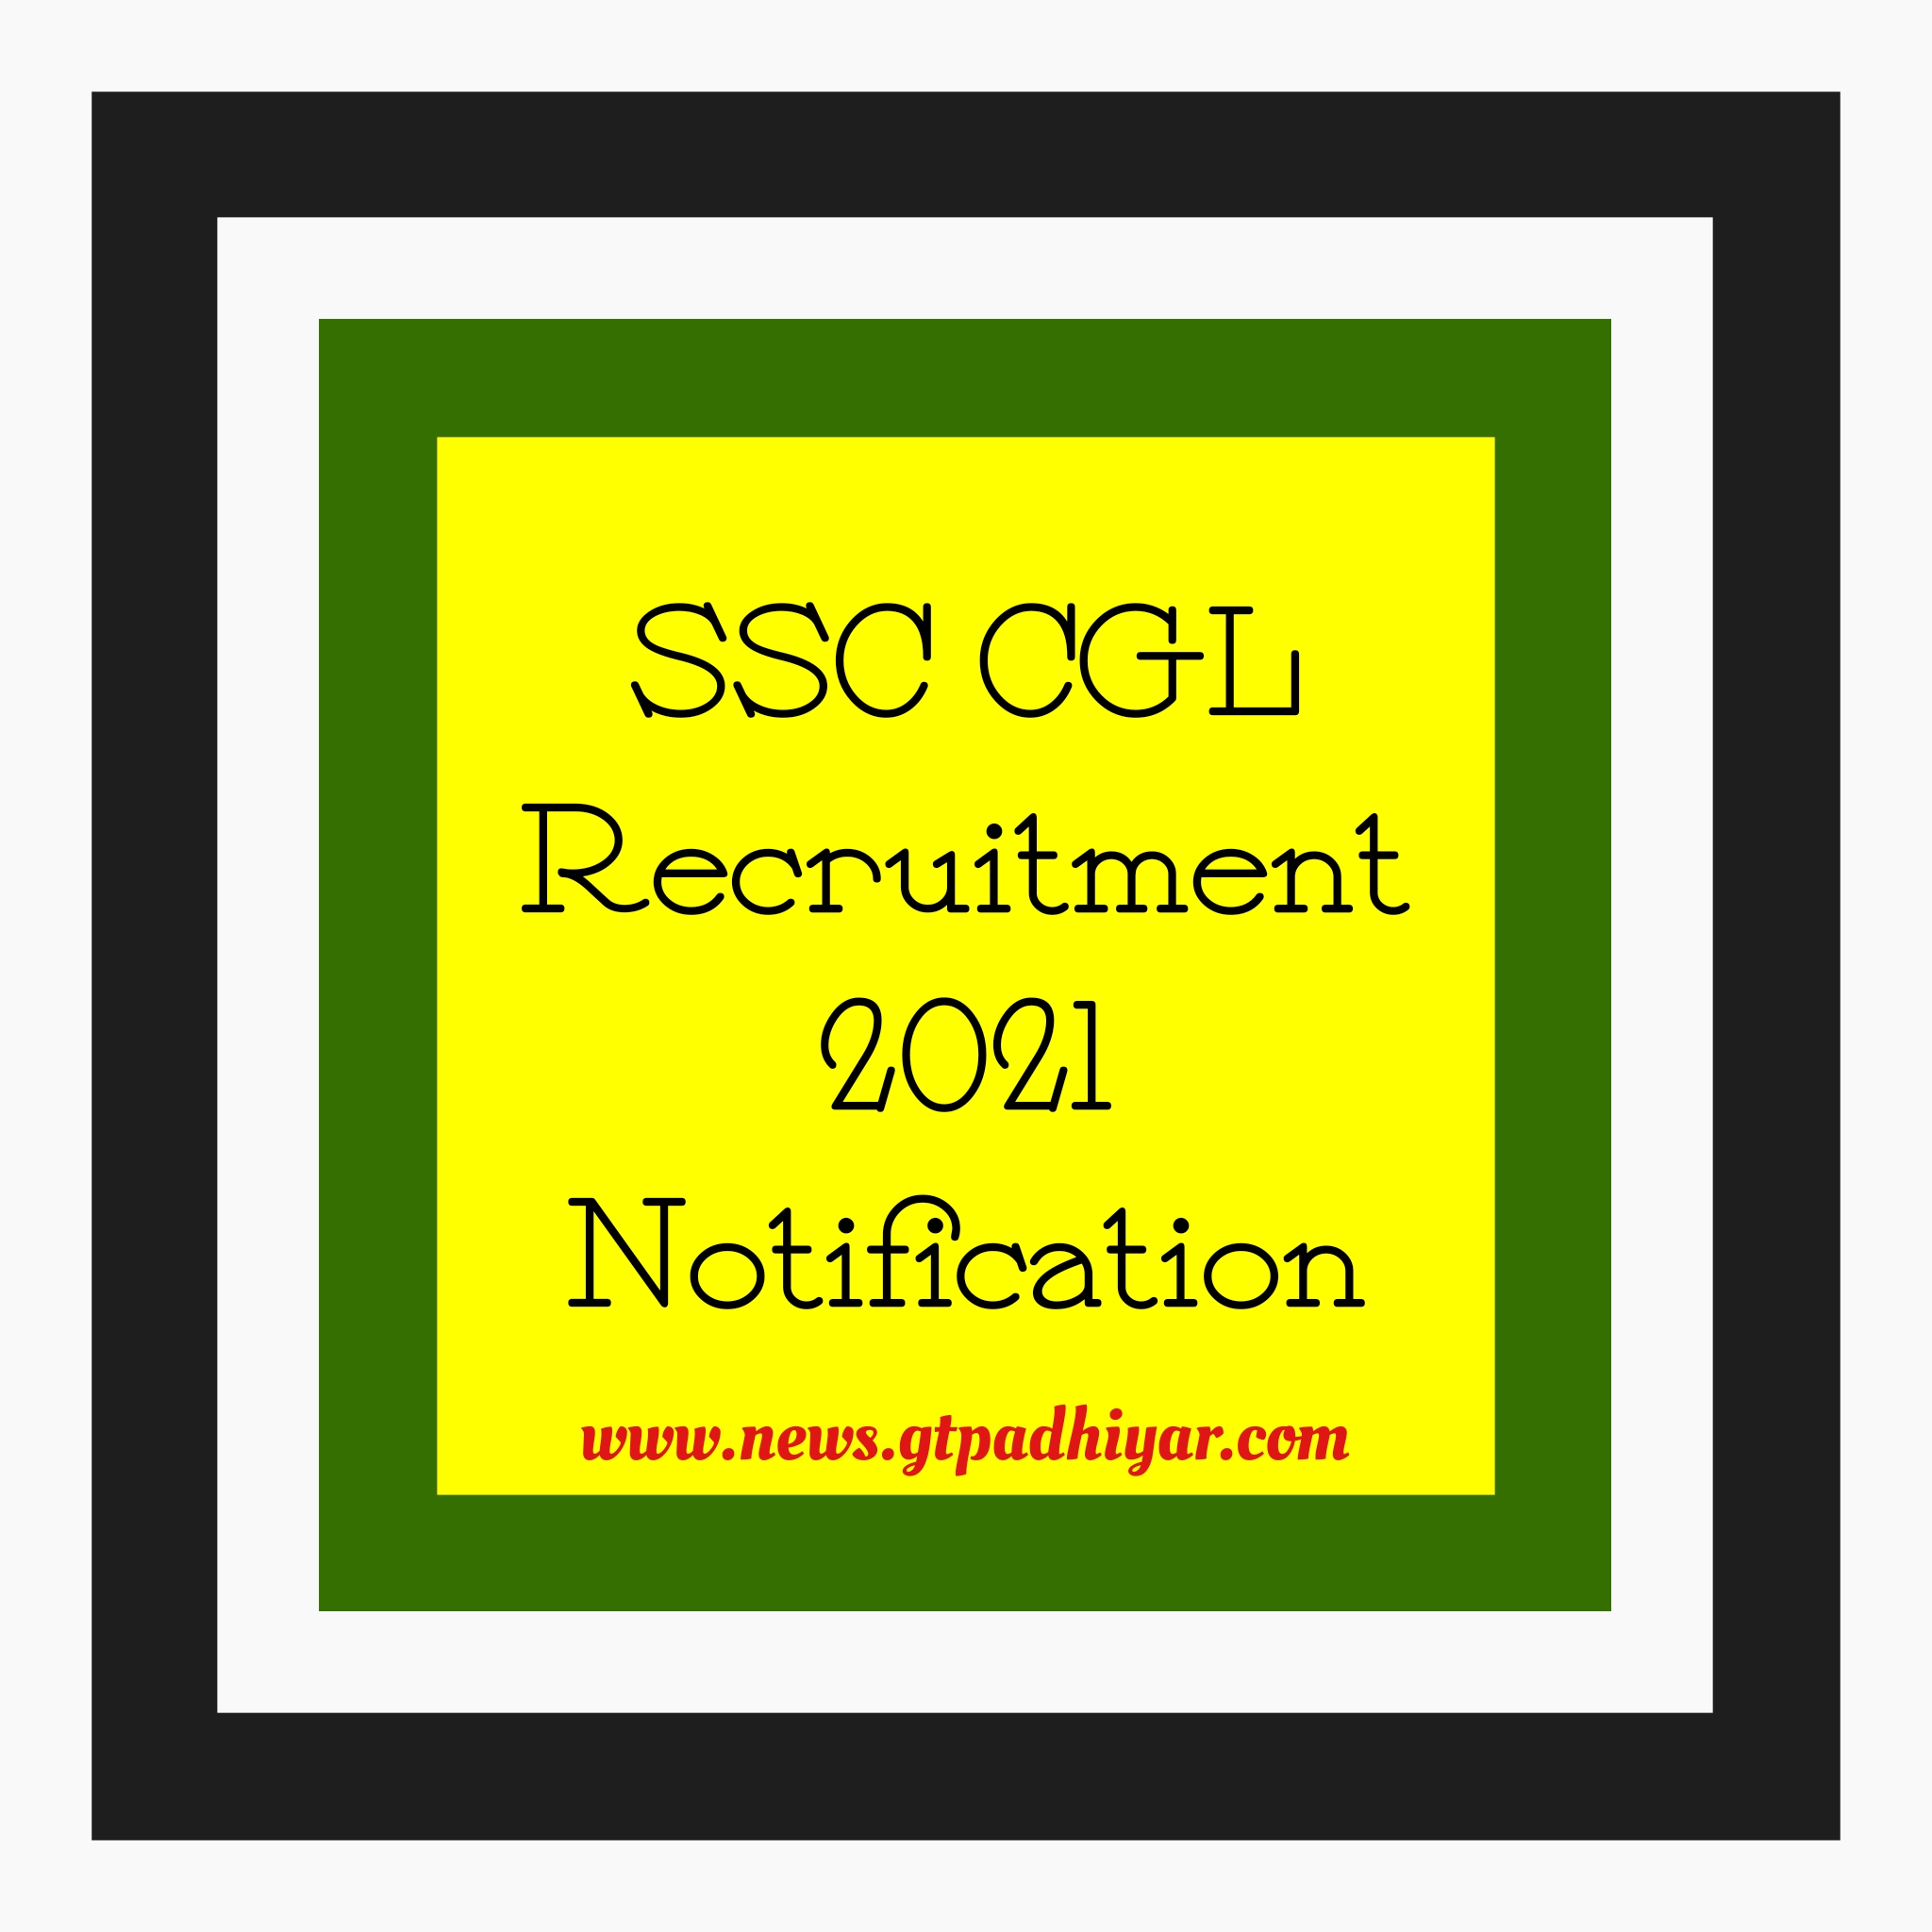 SSC CGL Recruitment 2021 Notification